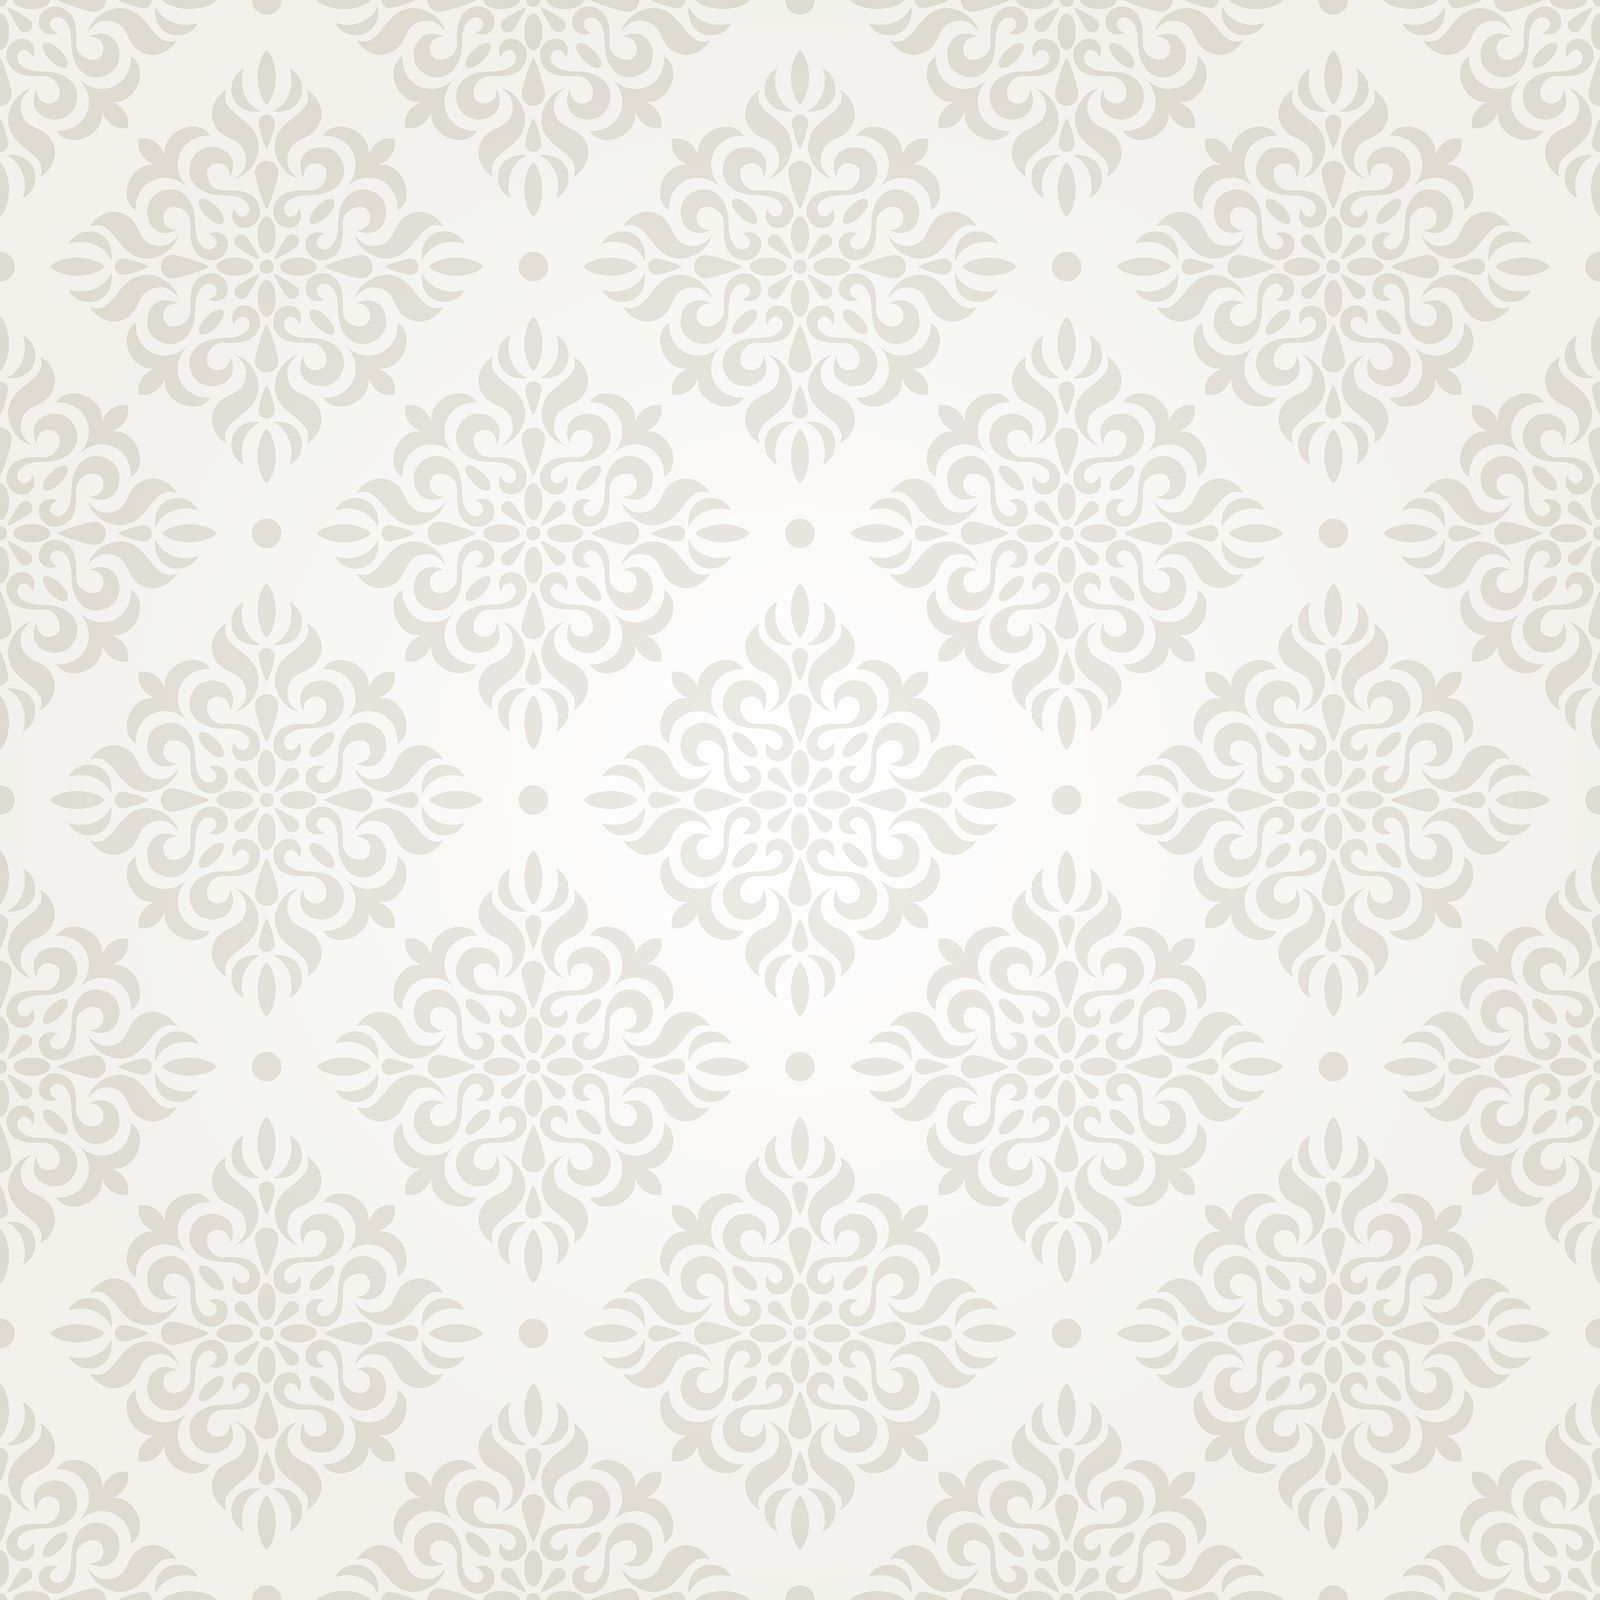 Vintage Wedding Pattern Wallpaper